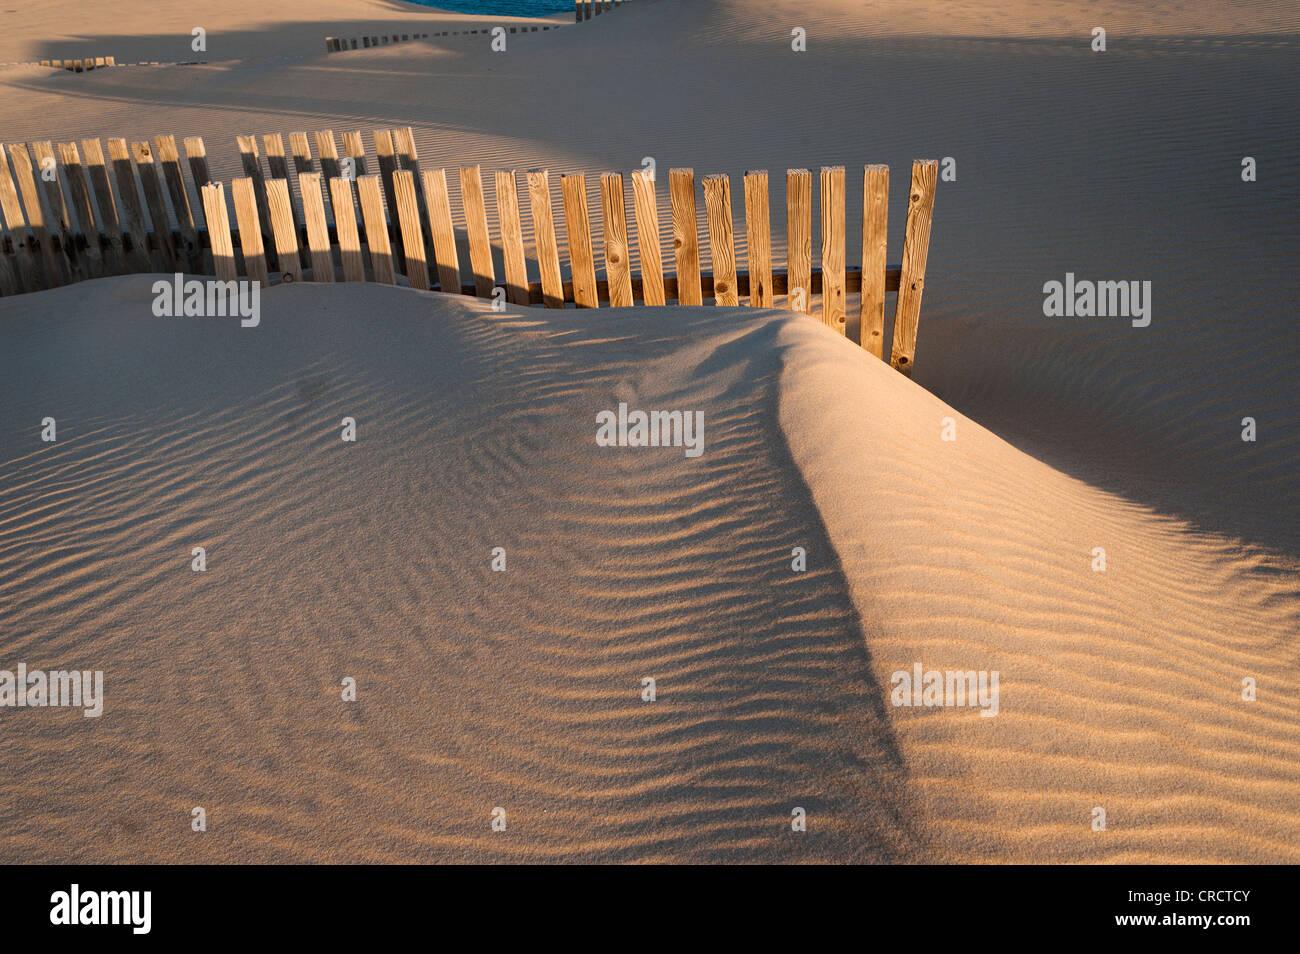 Wooden fence protecting sand dunes from the wind. - Stock Image